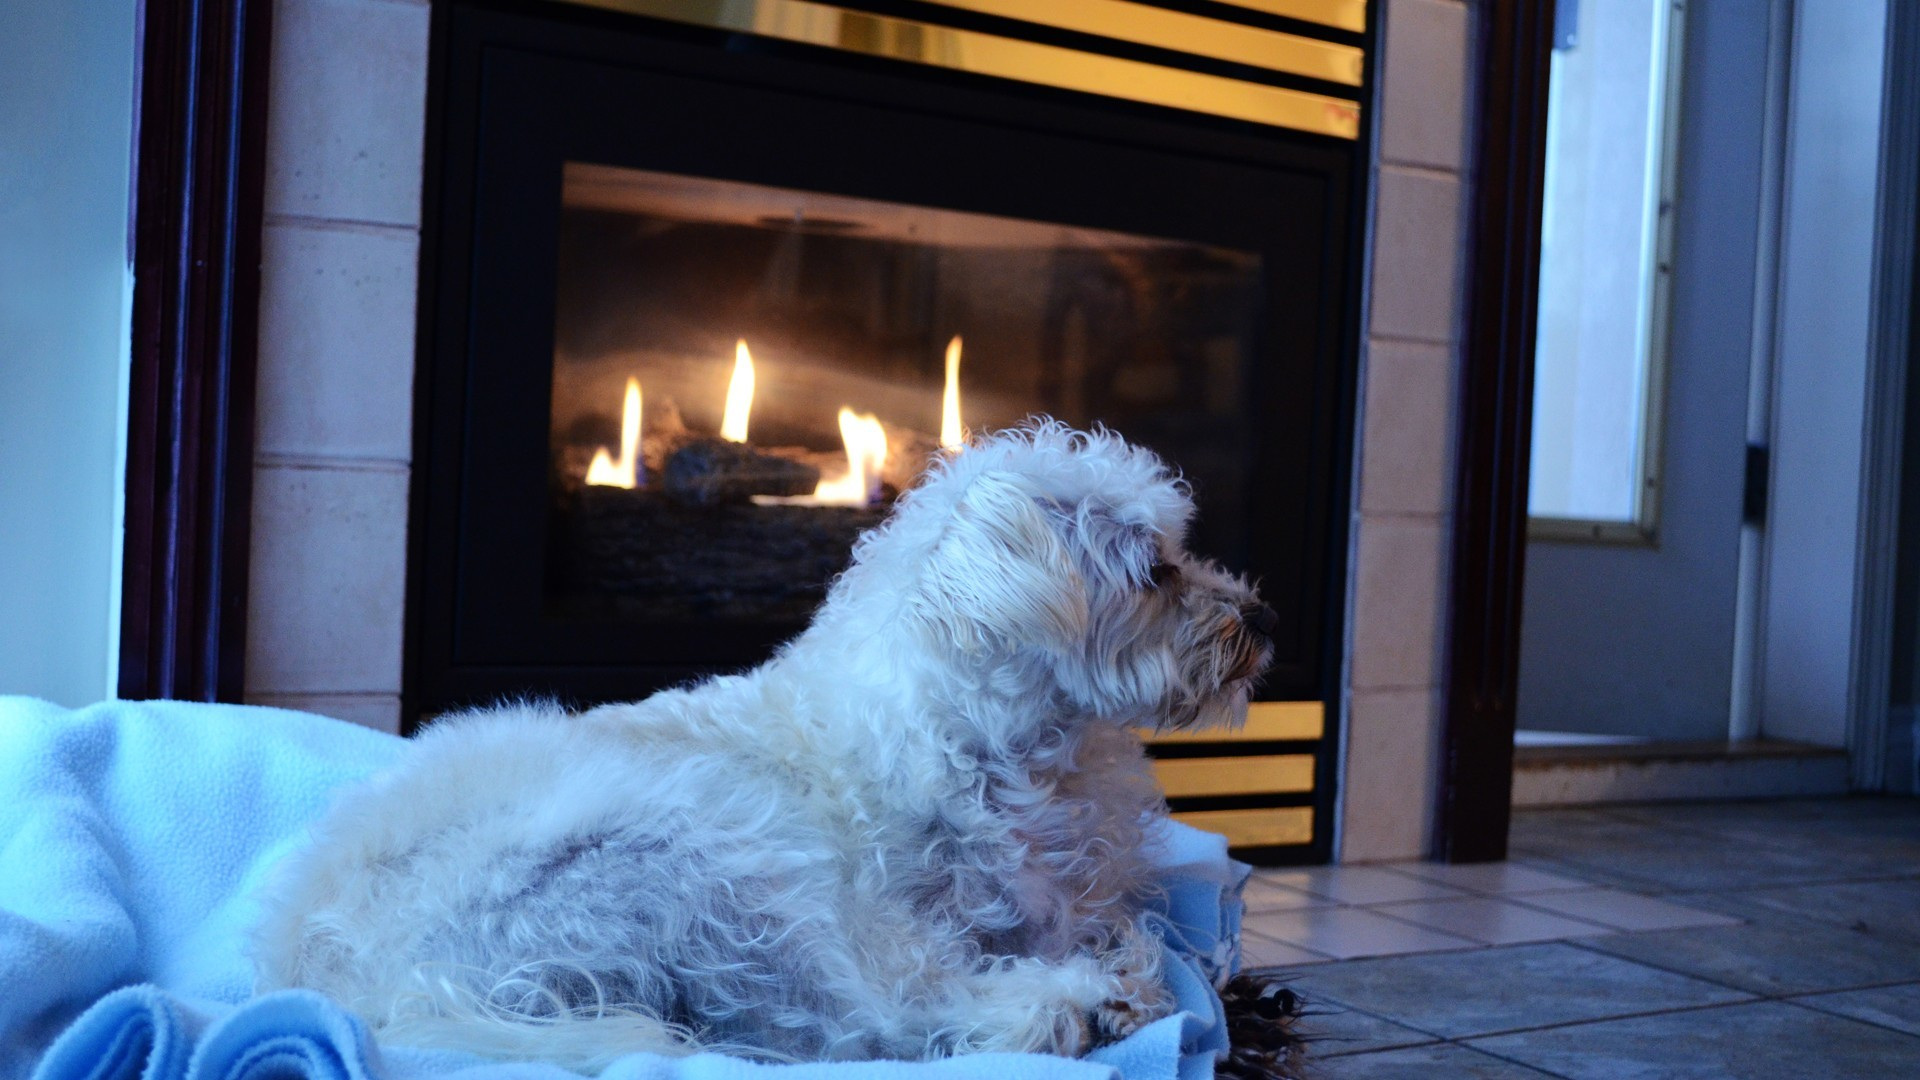 beds Dogs homes fireplaces HD Wallpaper